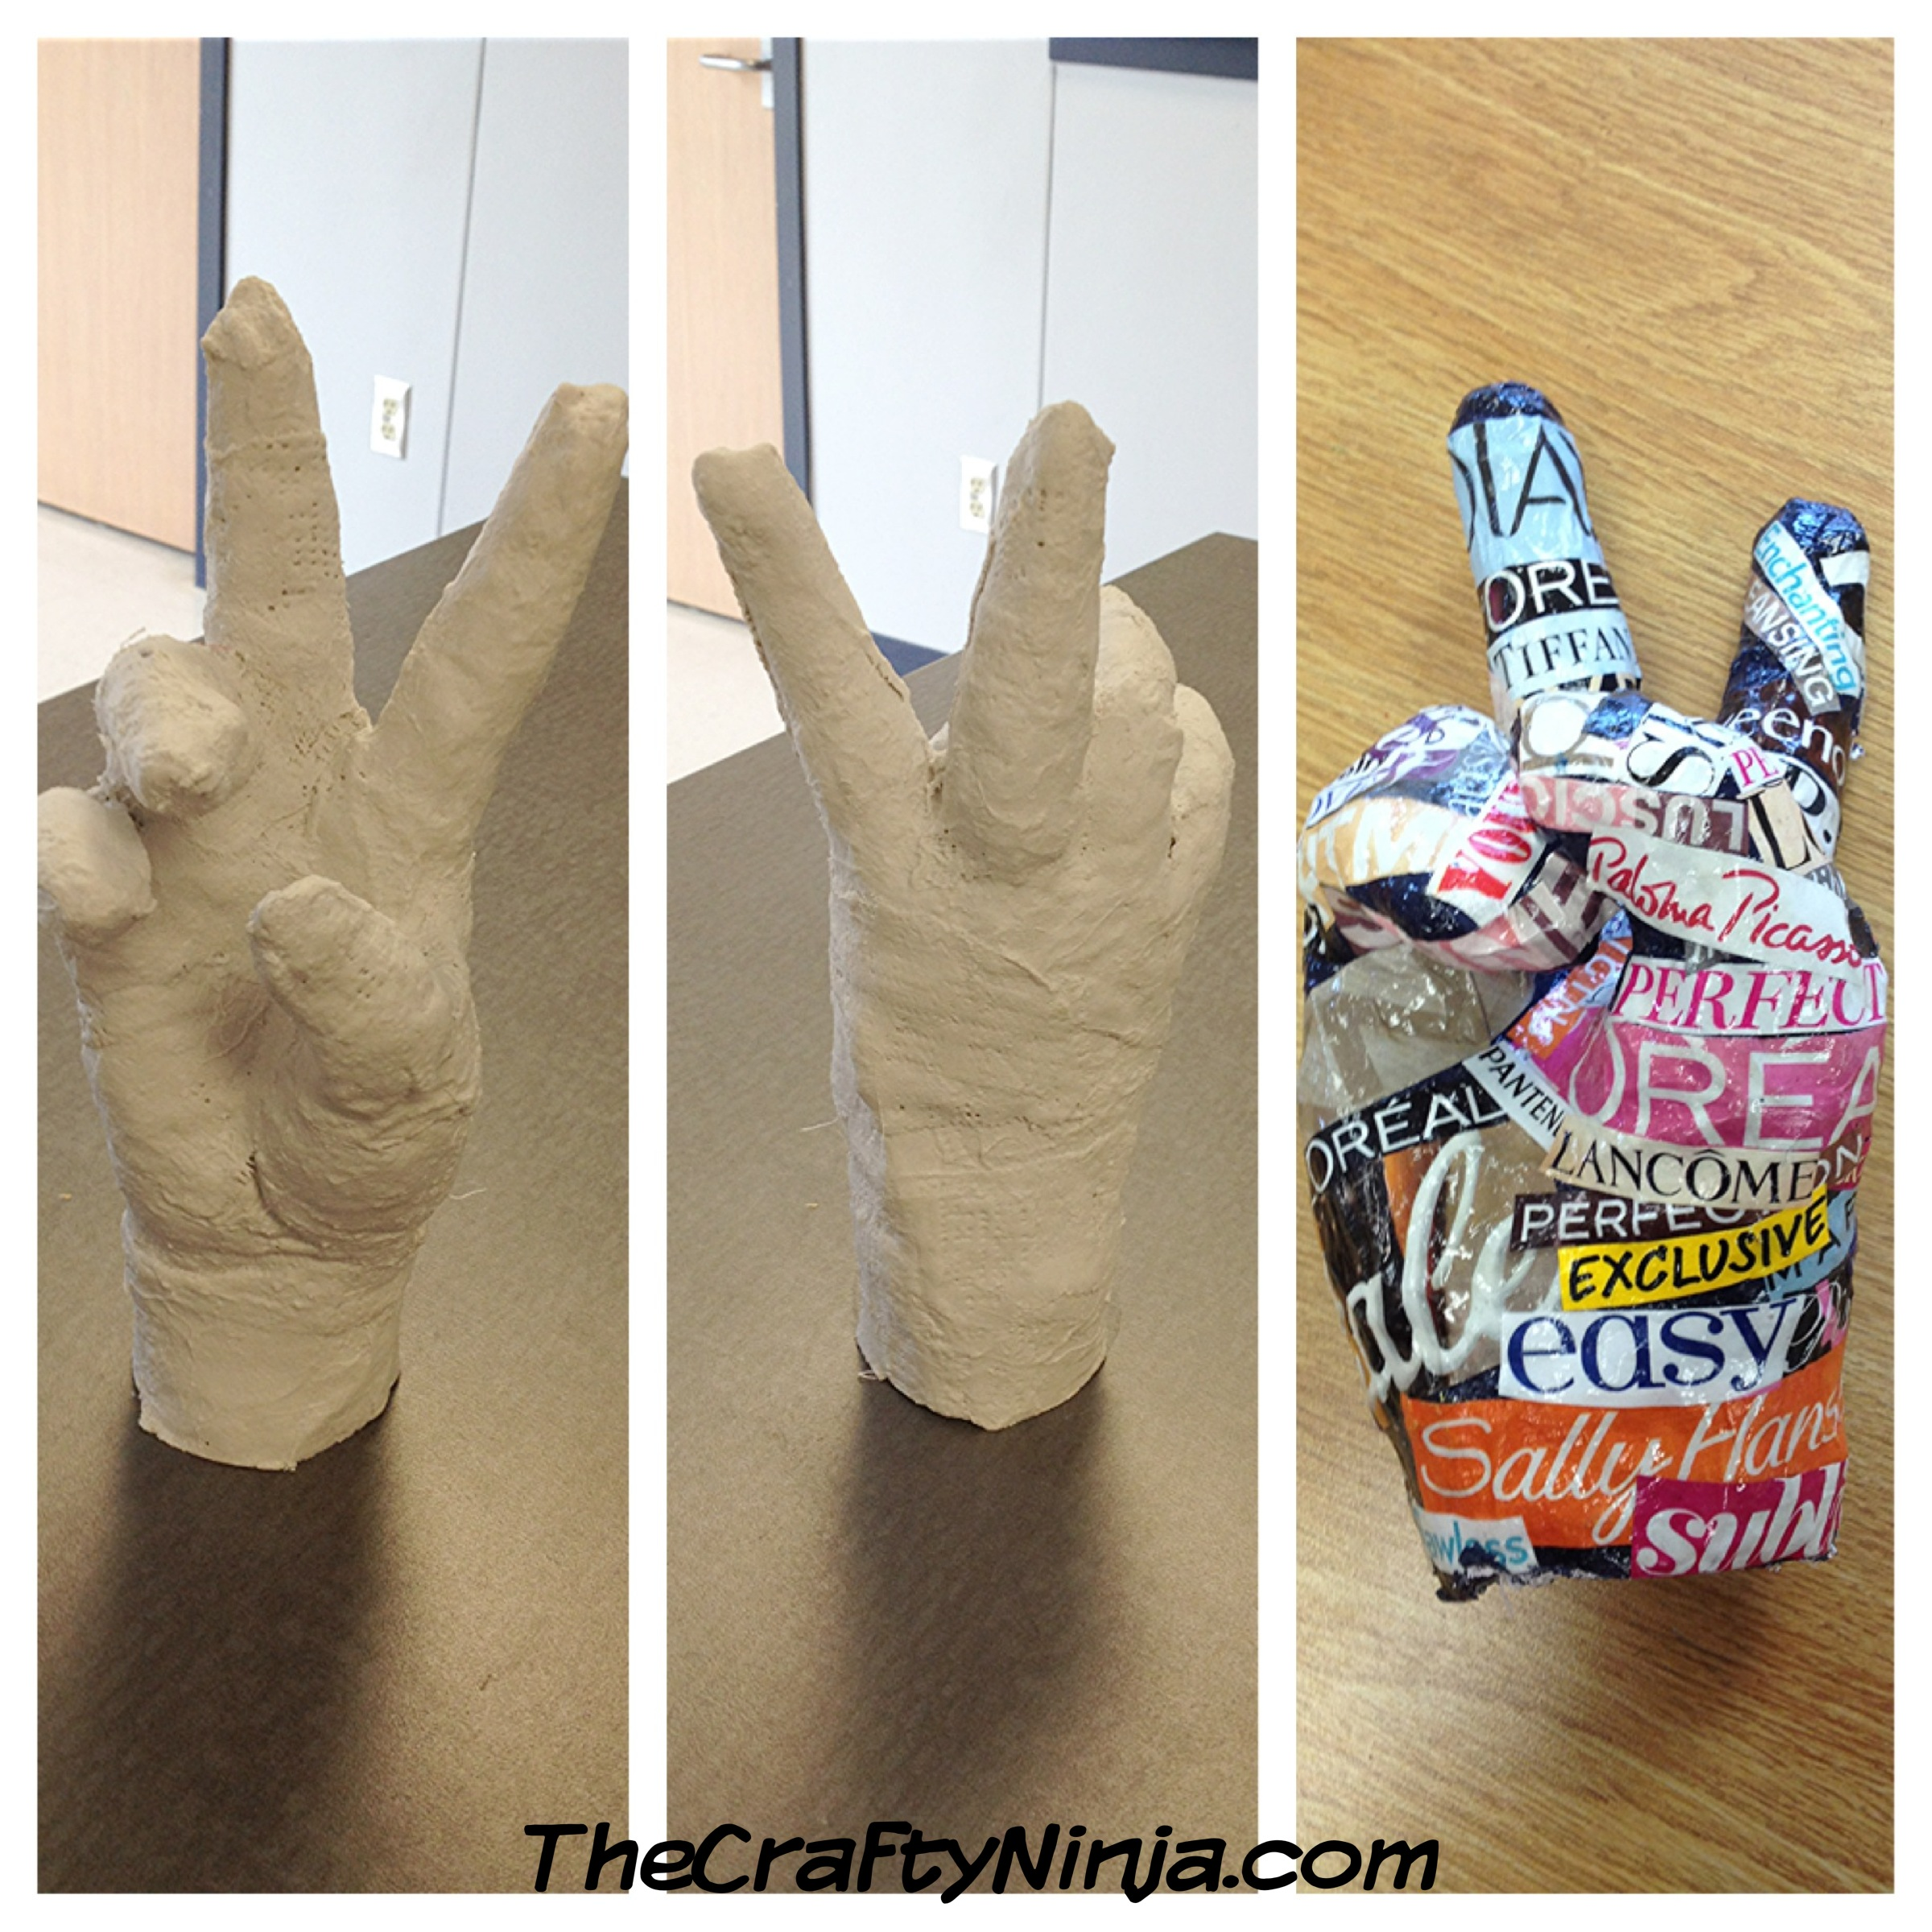 Plaster Hand Project The Crafty Ninja